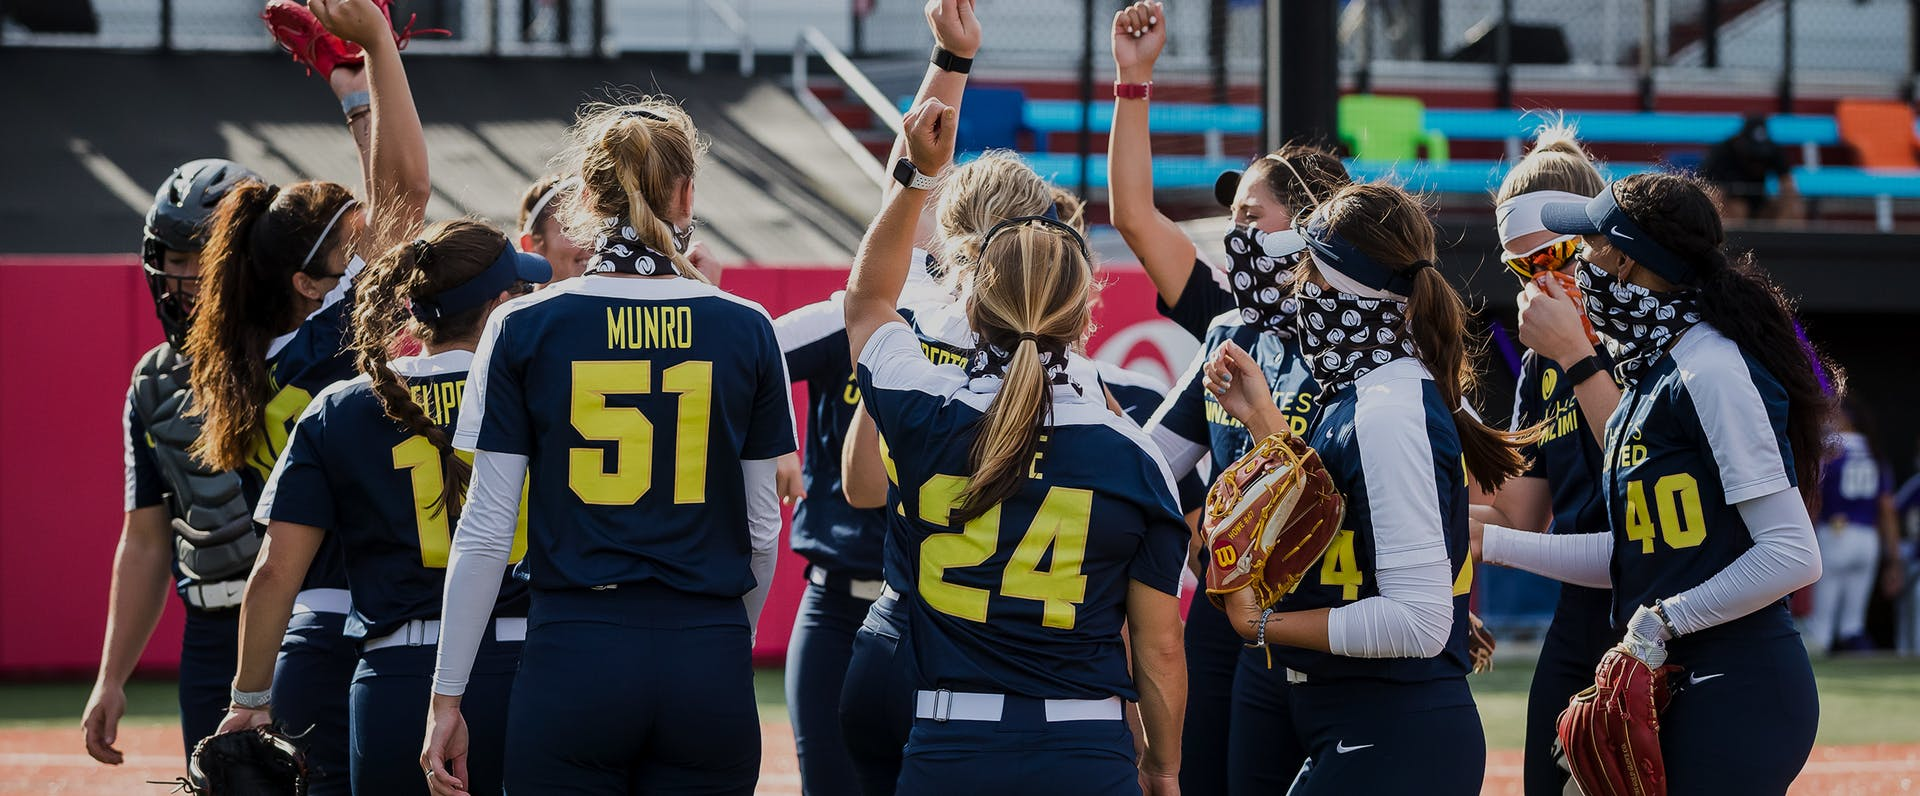 Athletes Unlimited Softball players cheer.